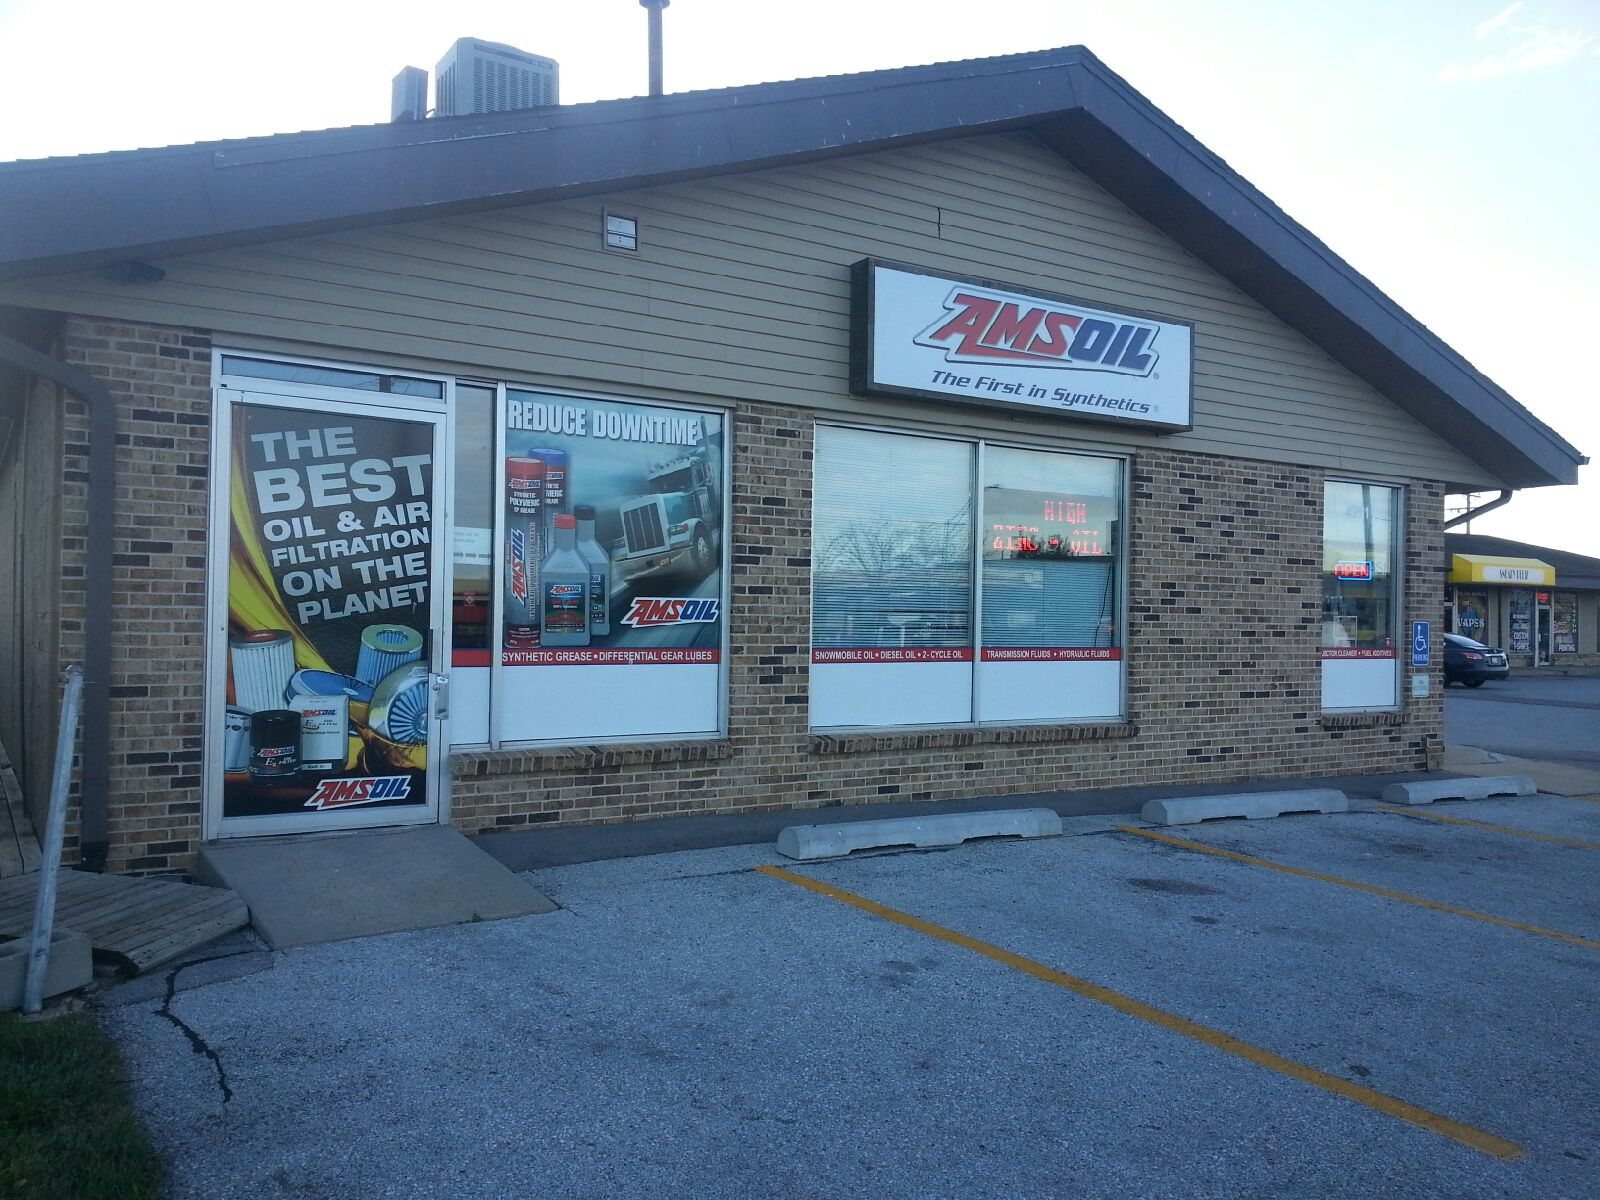 Spread the Word About the Omaha AMSOIL Store